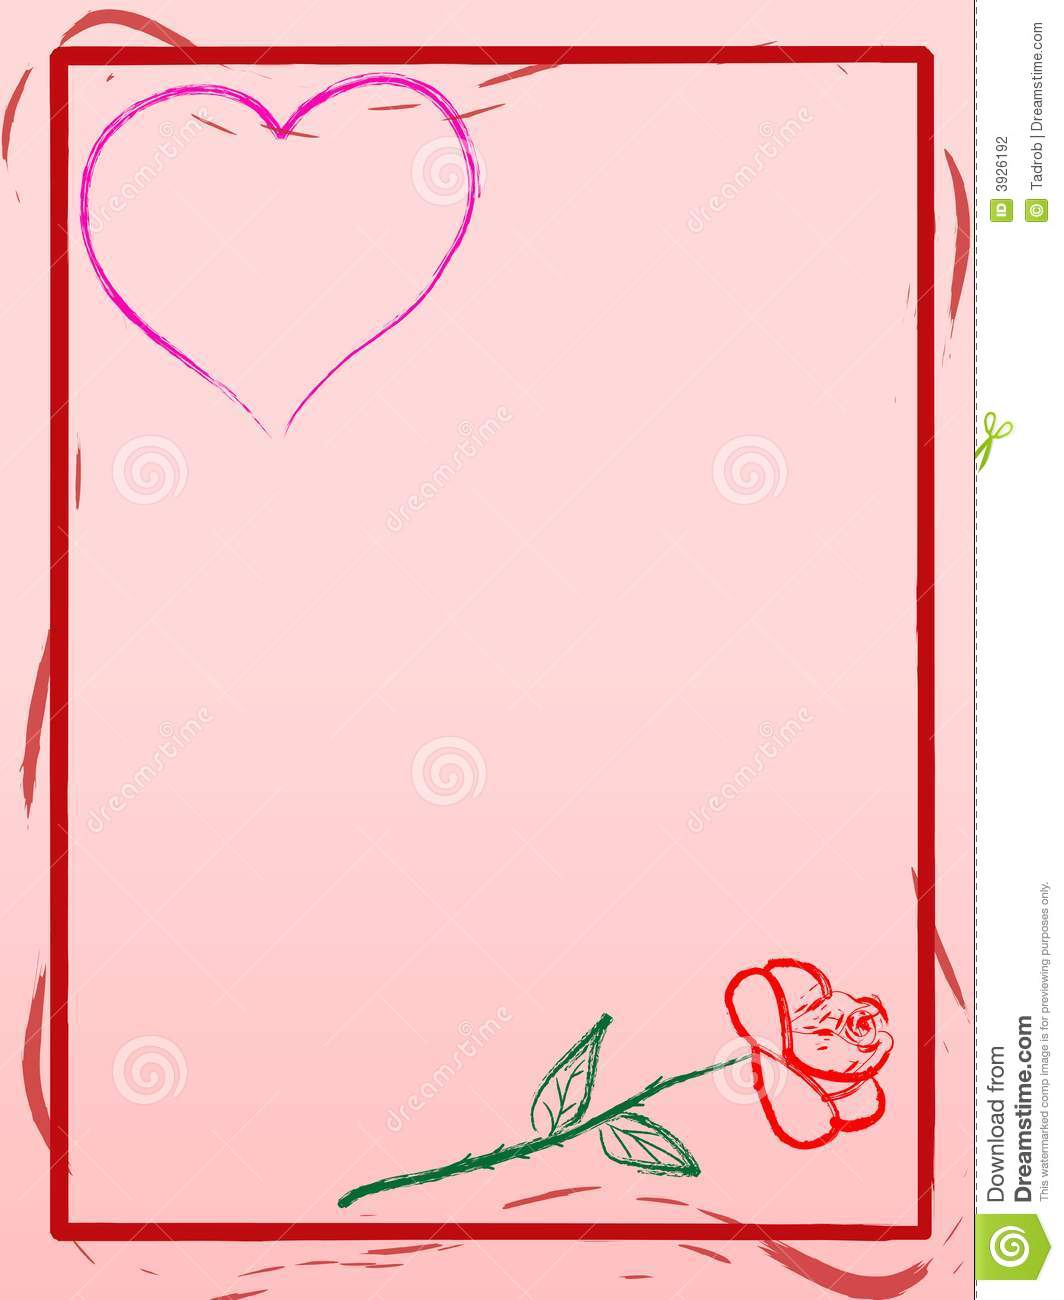 Love Letter Wallpaper Design : Love Letter Background Stock Photography - Image: 3926192